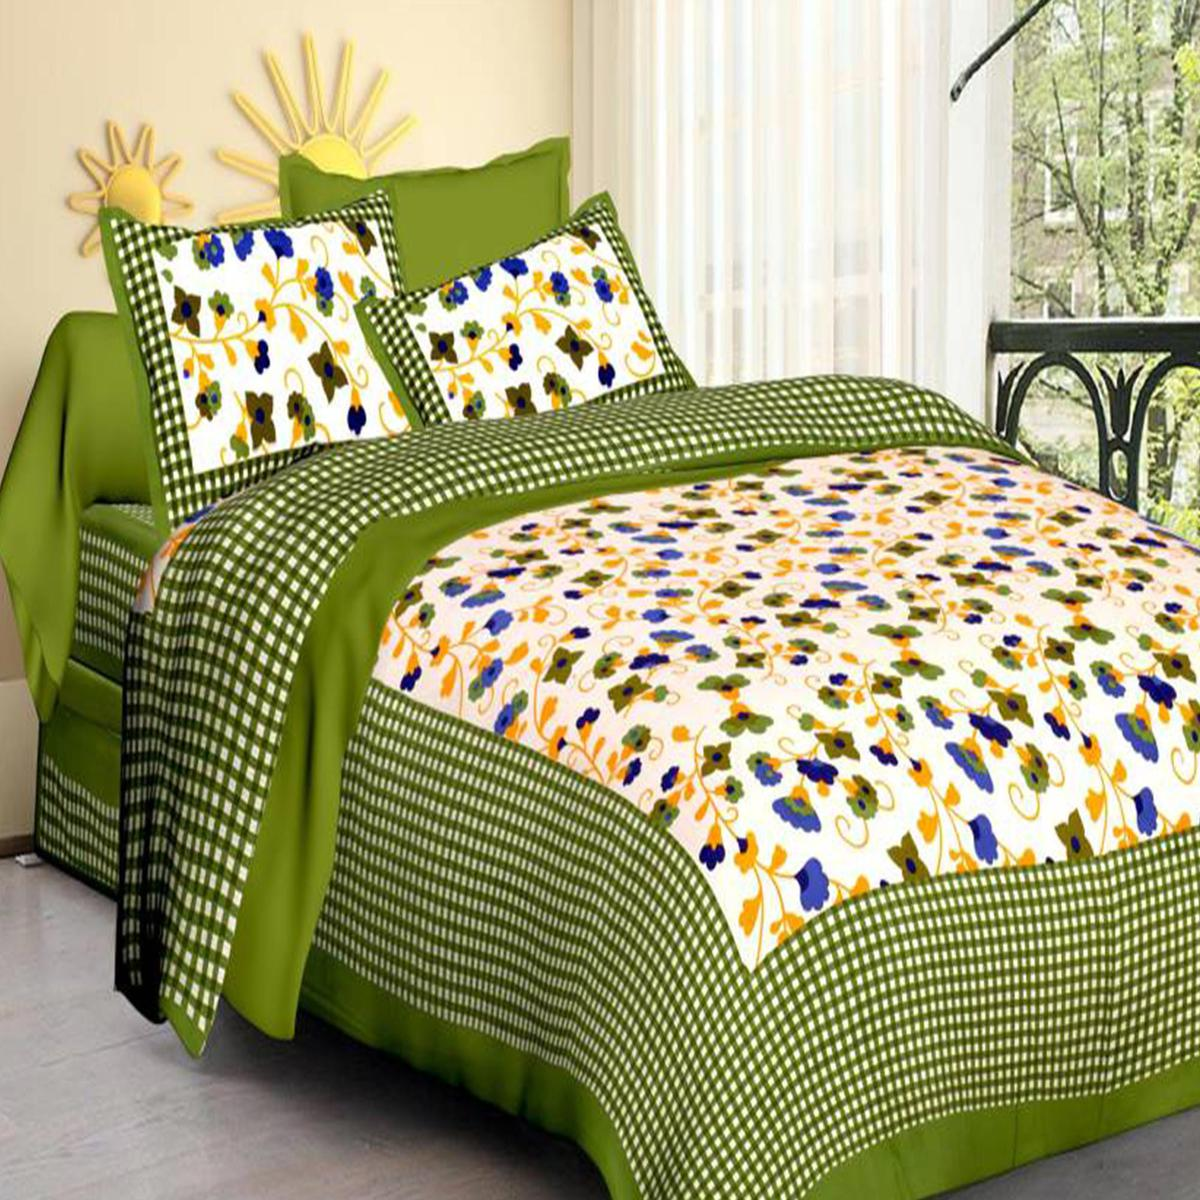 Surpassing Green Colored Floral Print Cotton Bedsheet With Pillow Cover